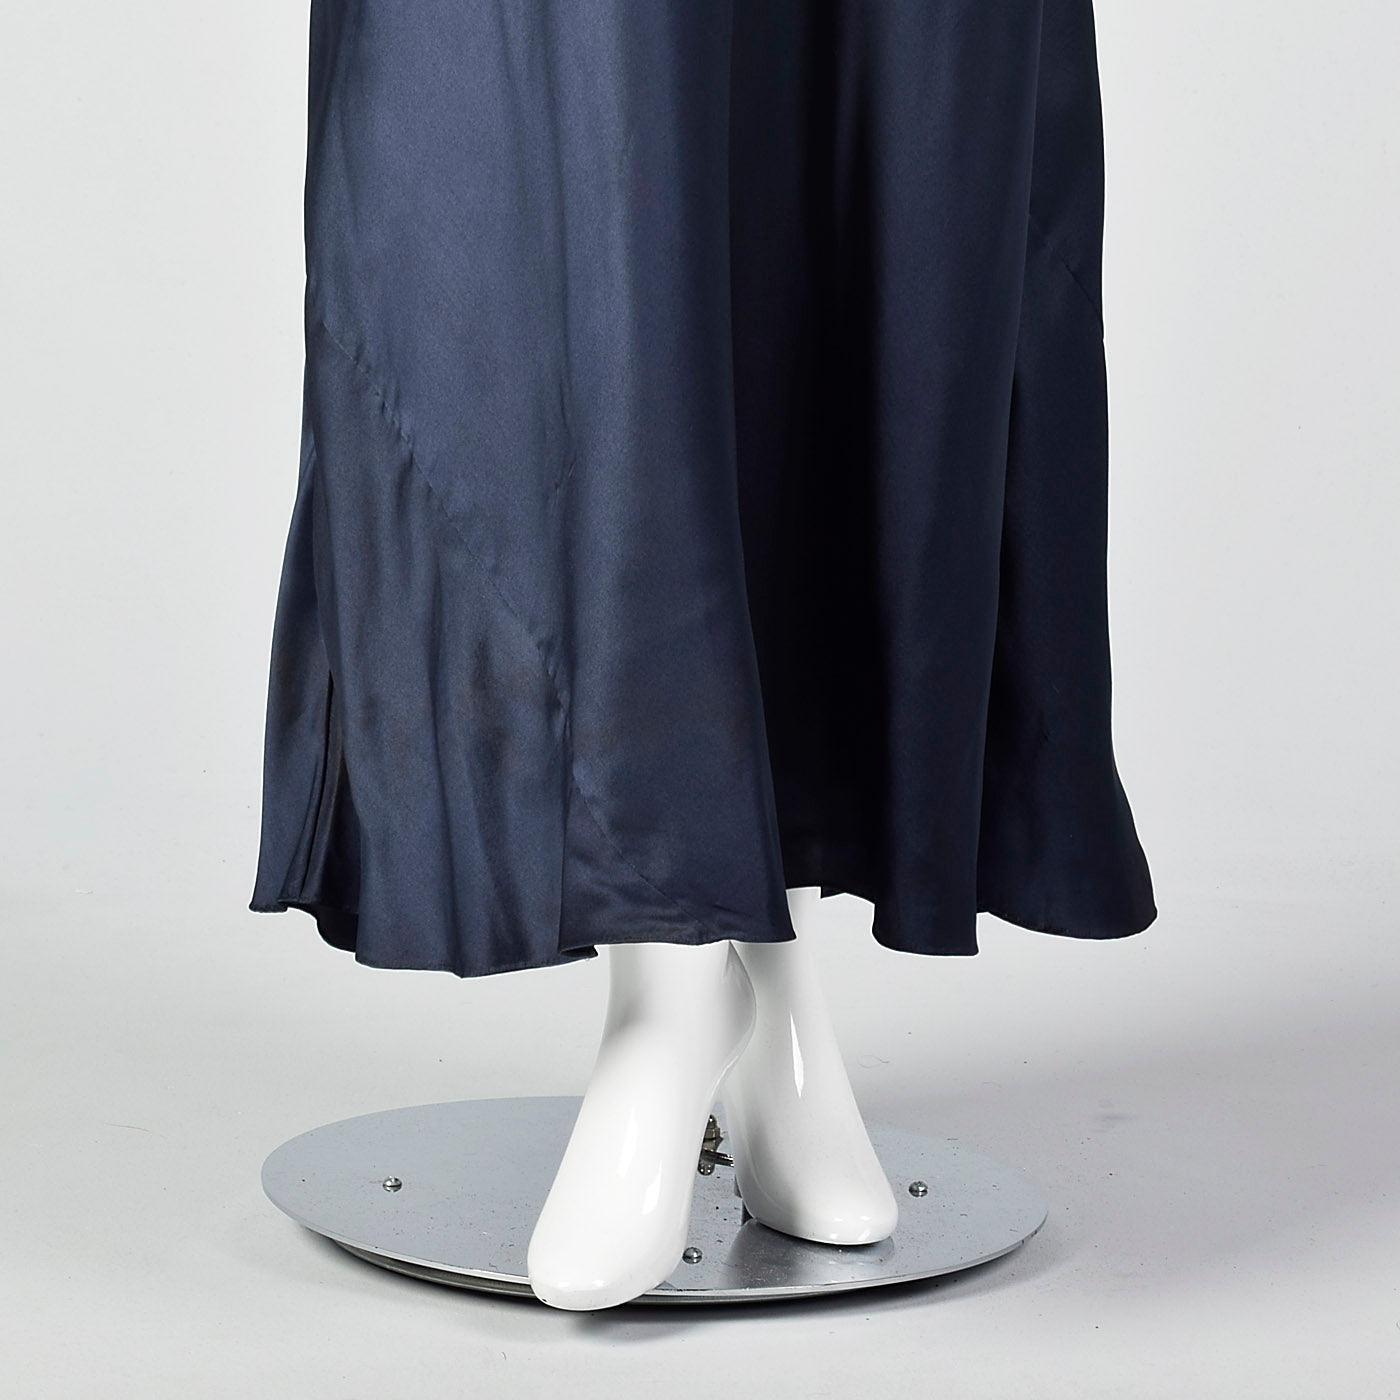 1930s Glamorous Navy Silk Dress